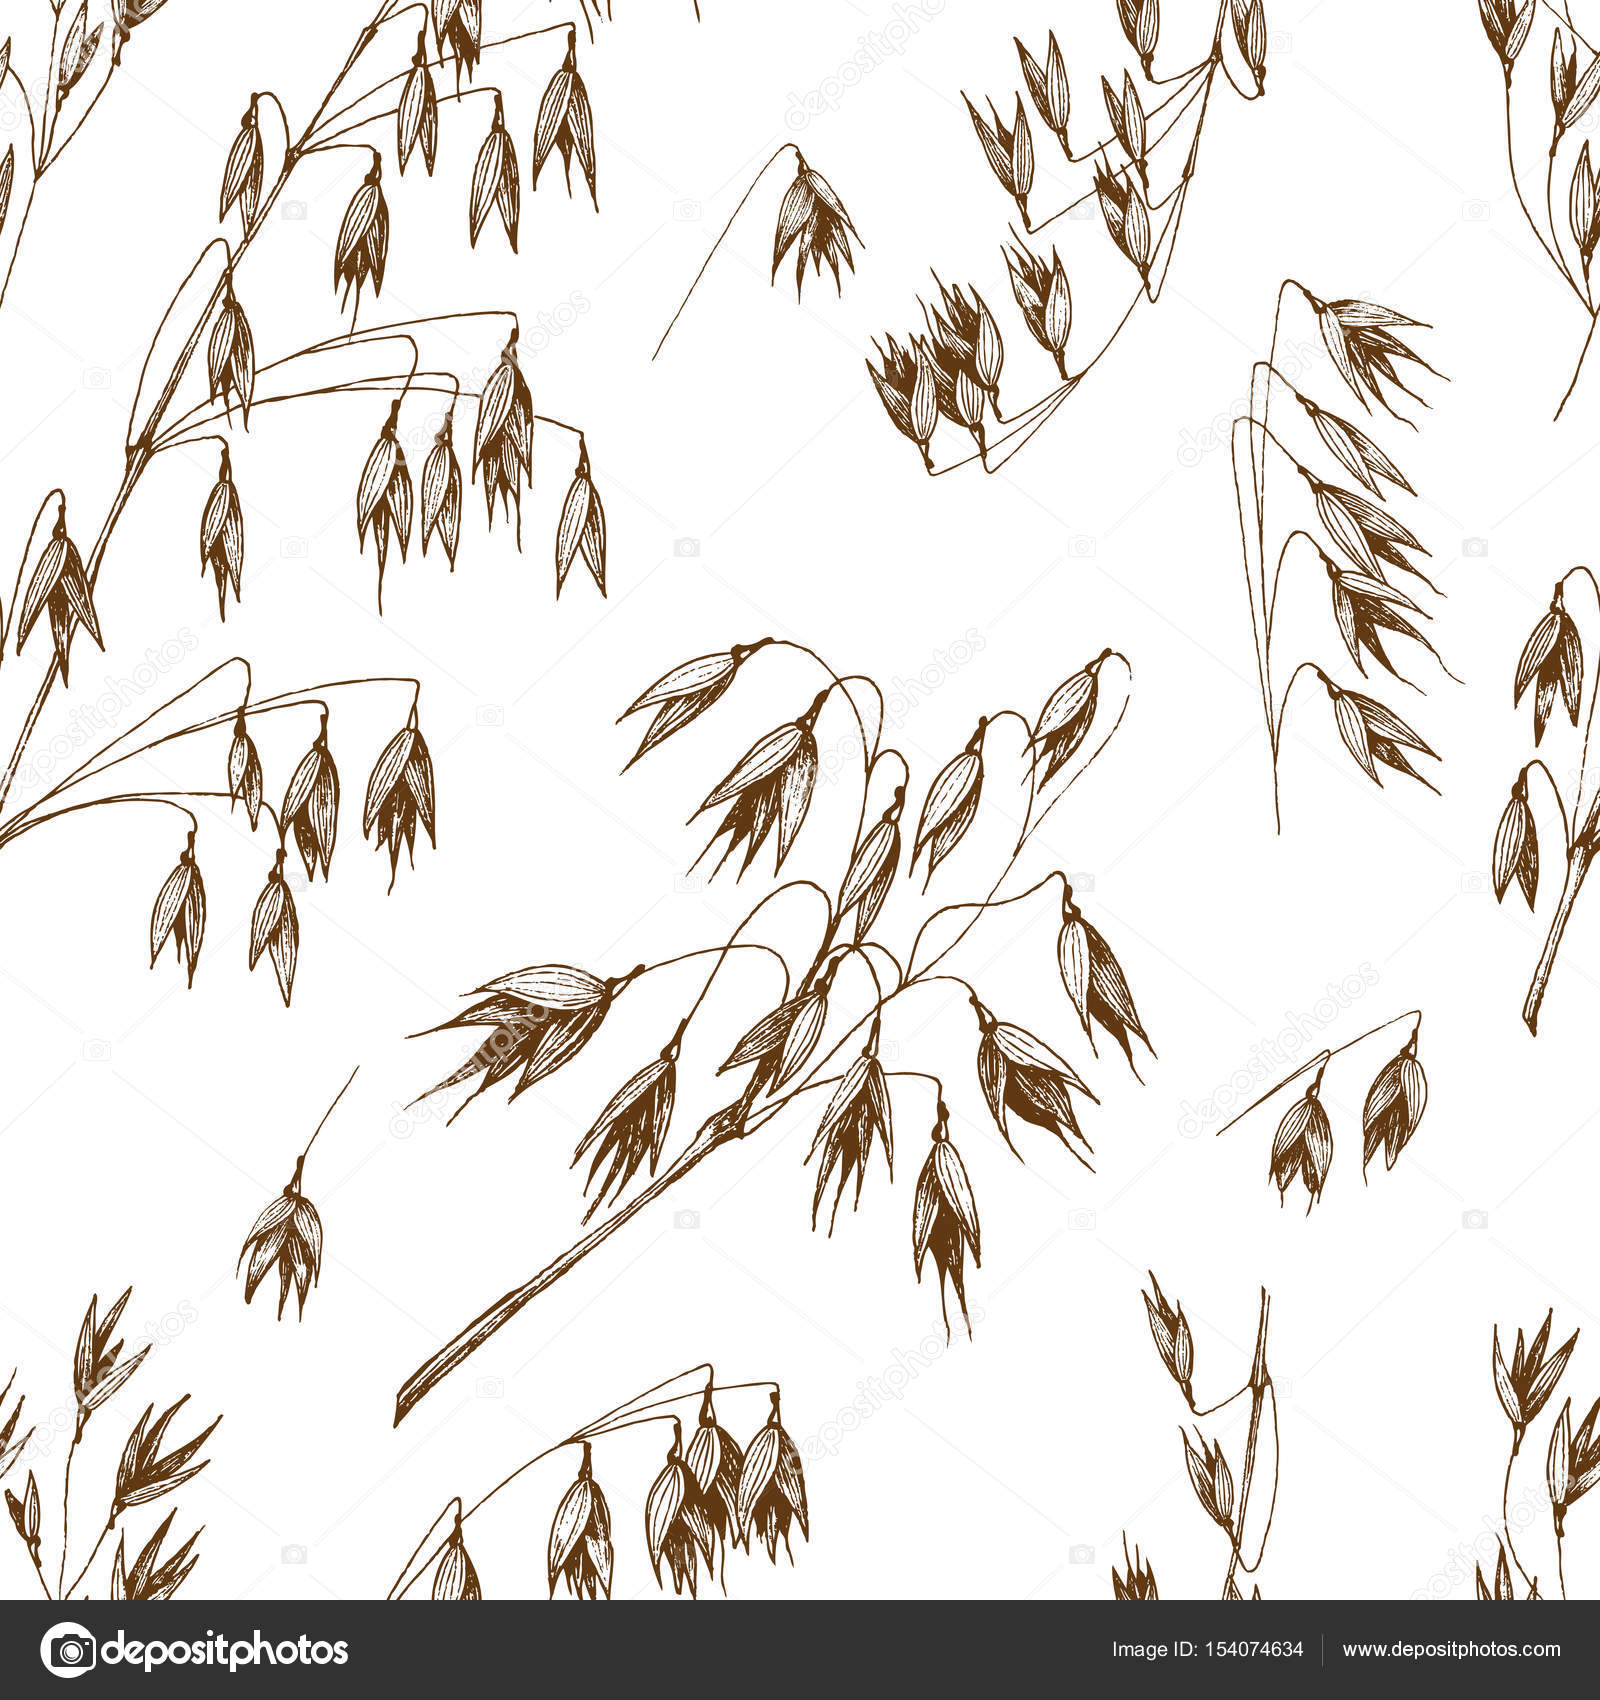 Drawn grain vintage Background vintage vector hand sketch